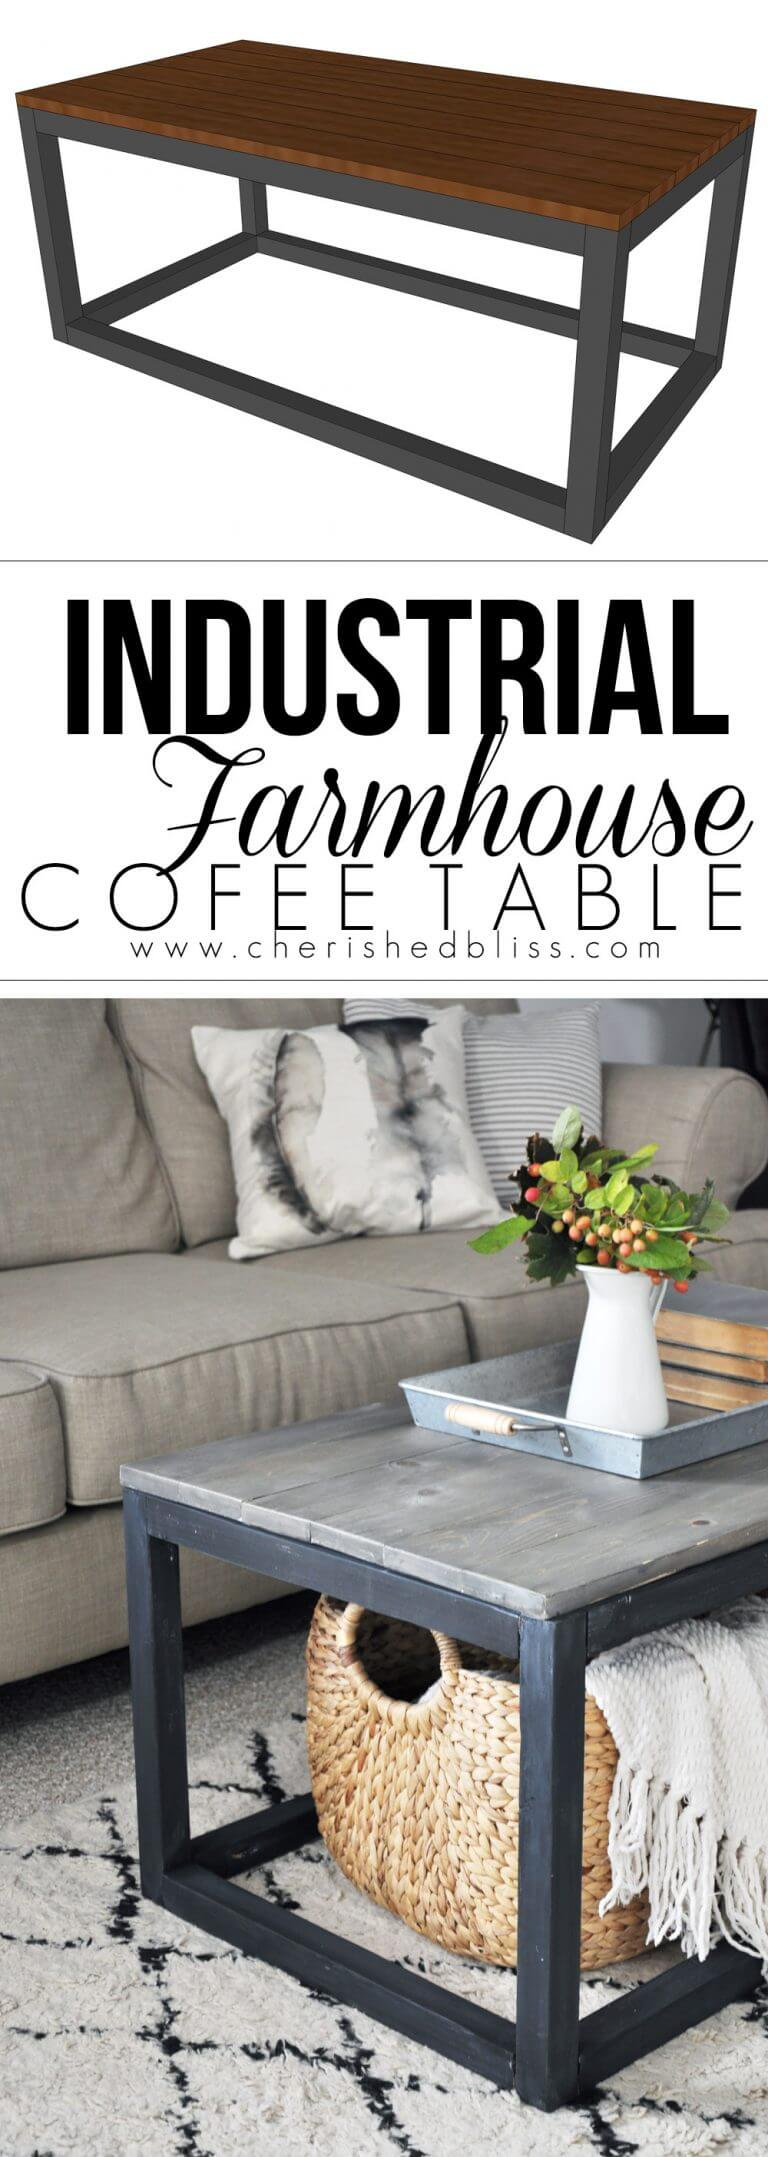 Simple Industrial to Farmhouse Furniture Makeover